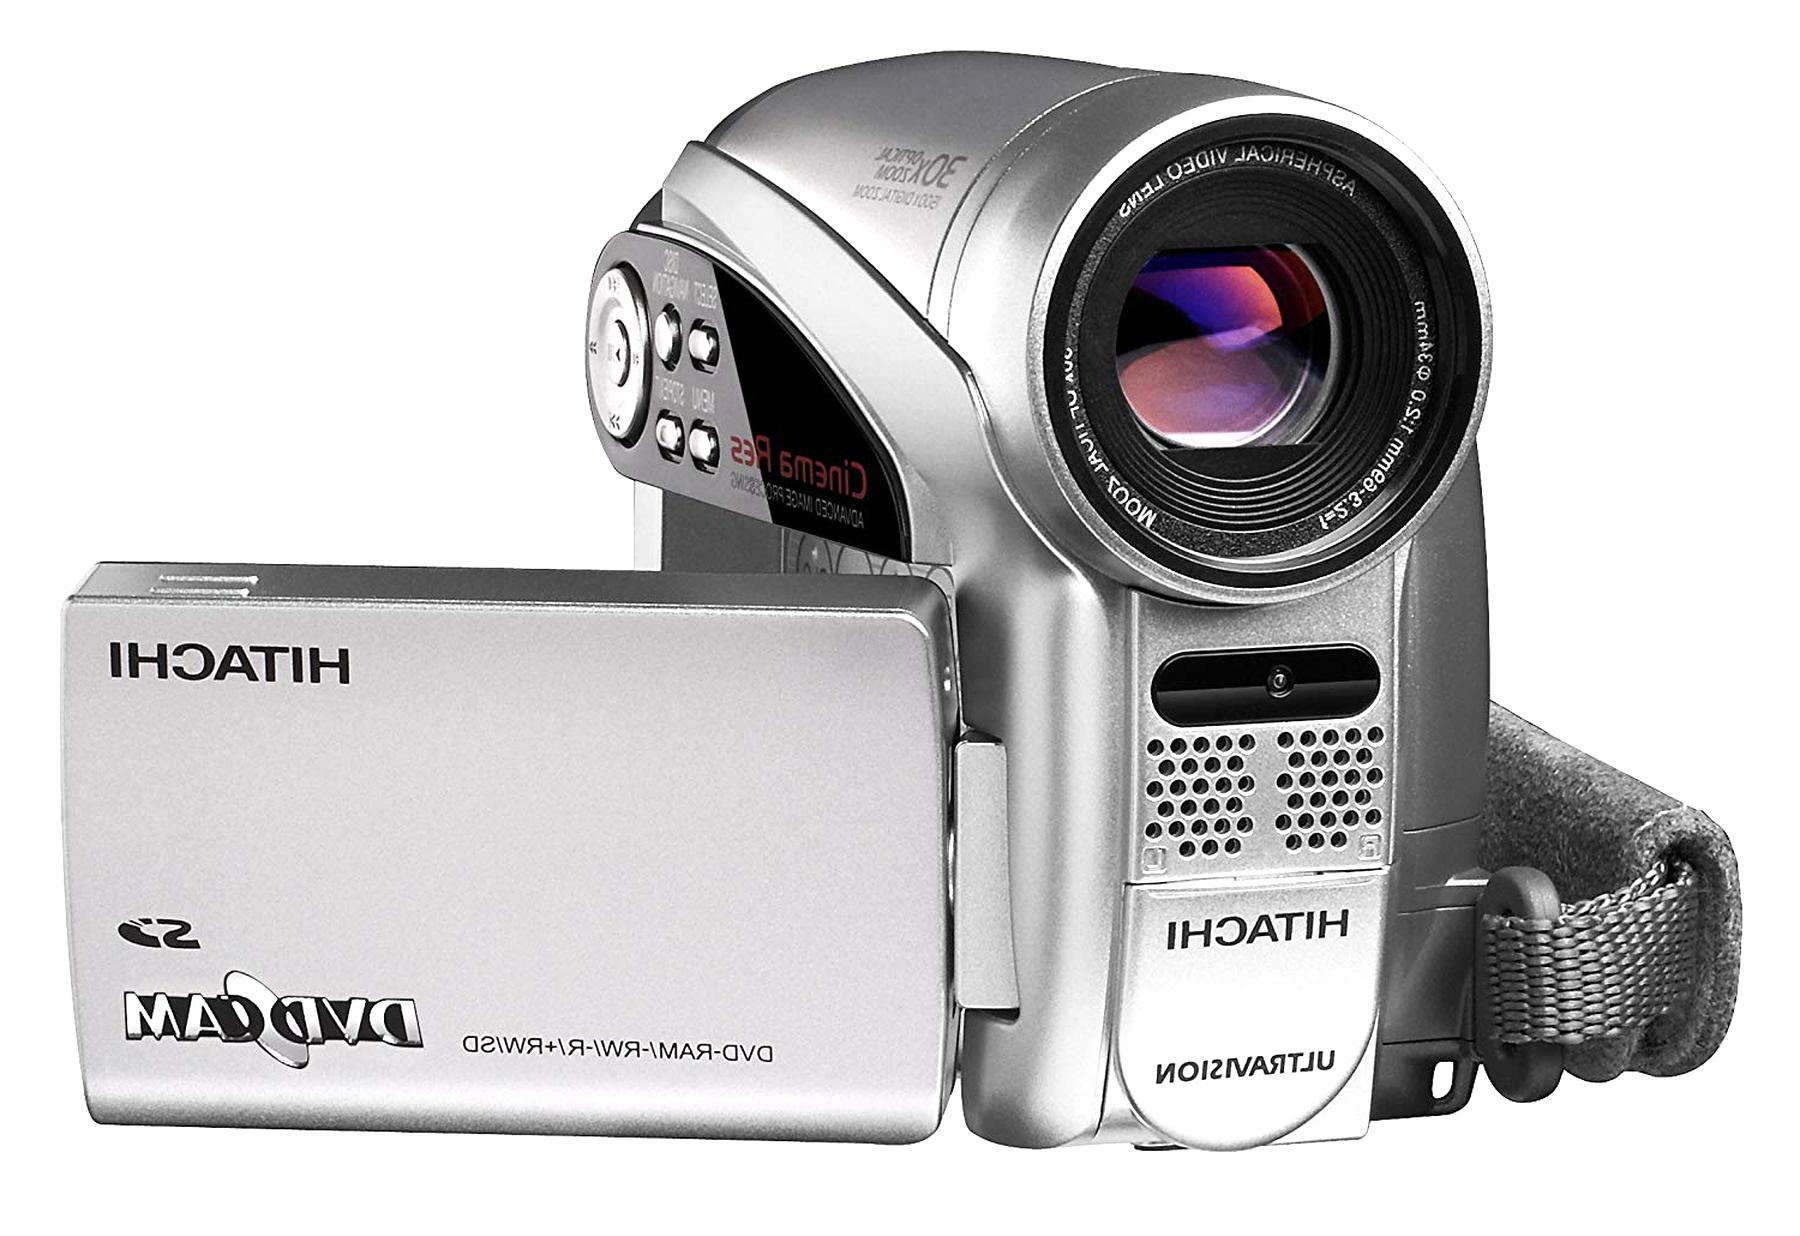 dvd camcorders hitachi for sale